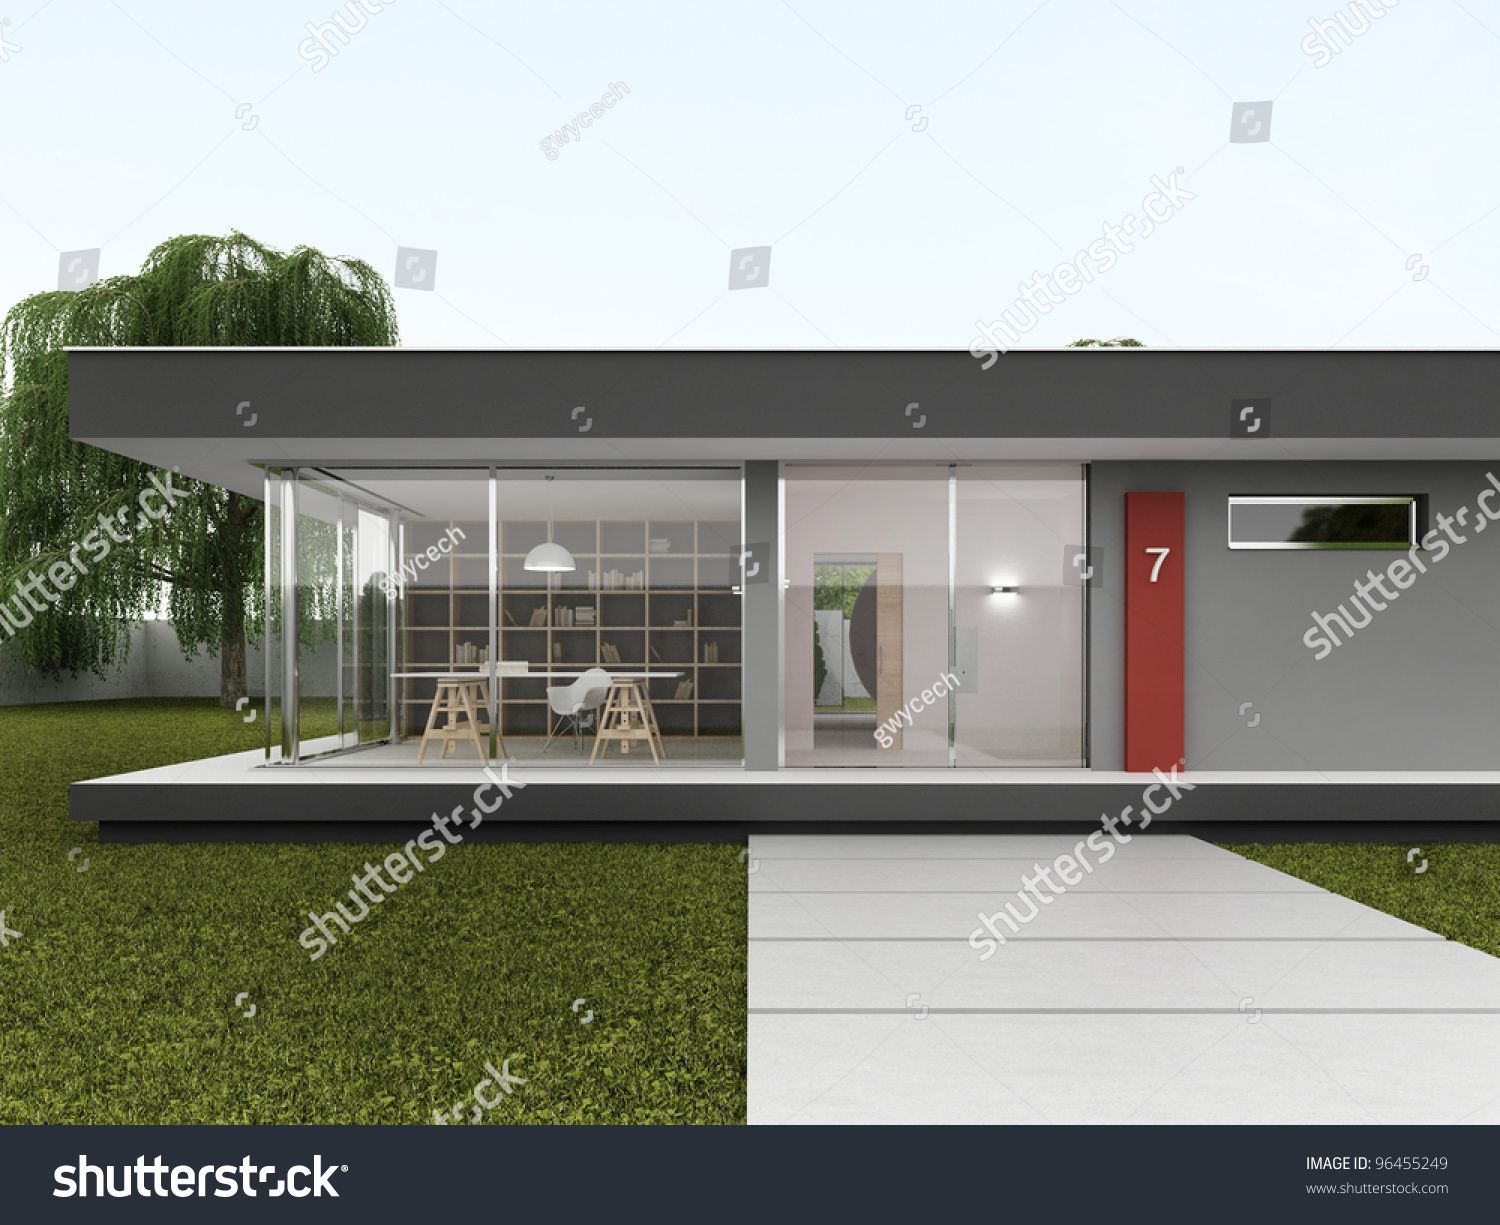 Front Yard Very Modern House Bungalow Stock Illustration 96455249 ... - ^